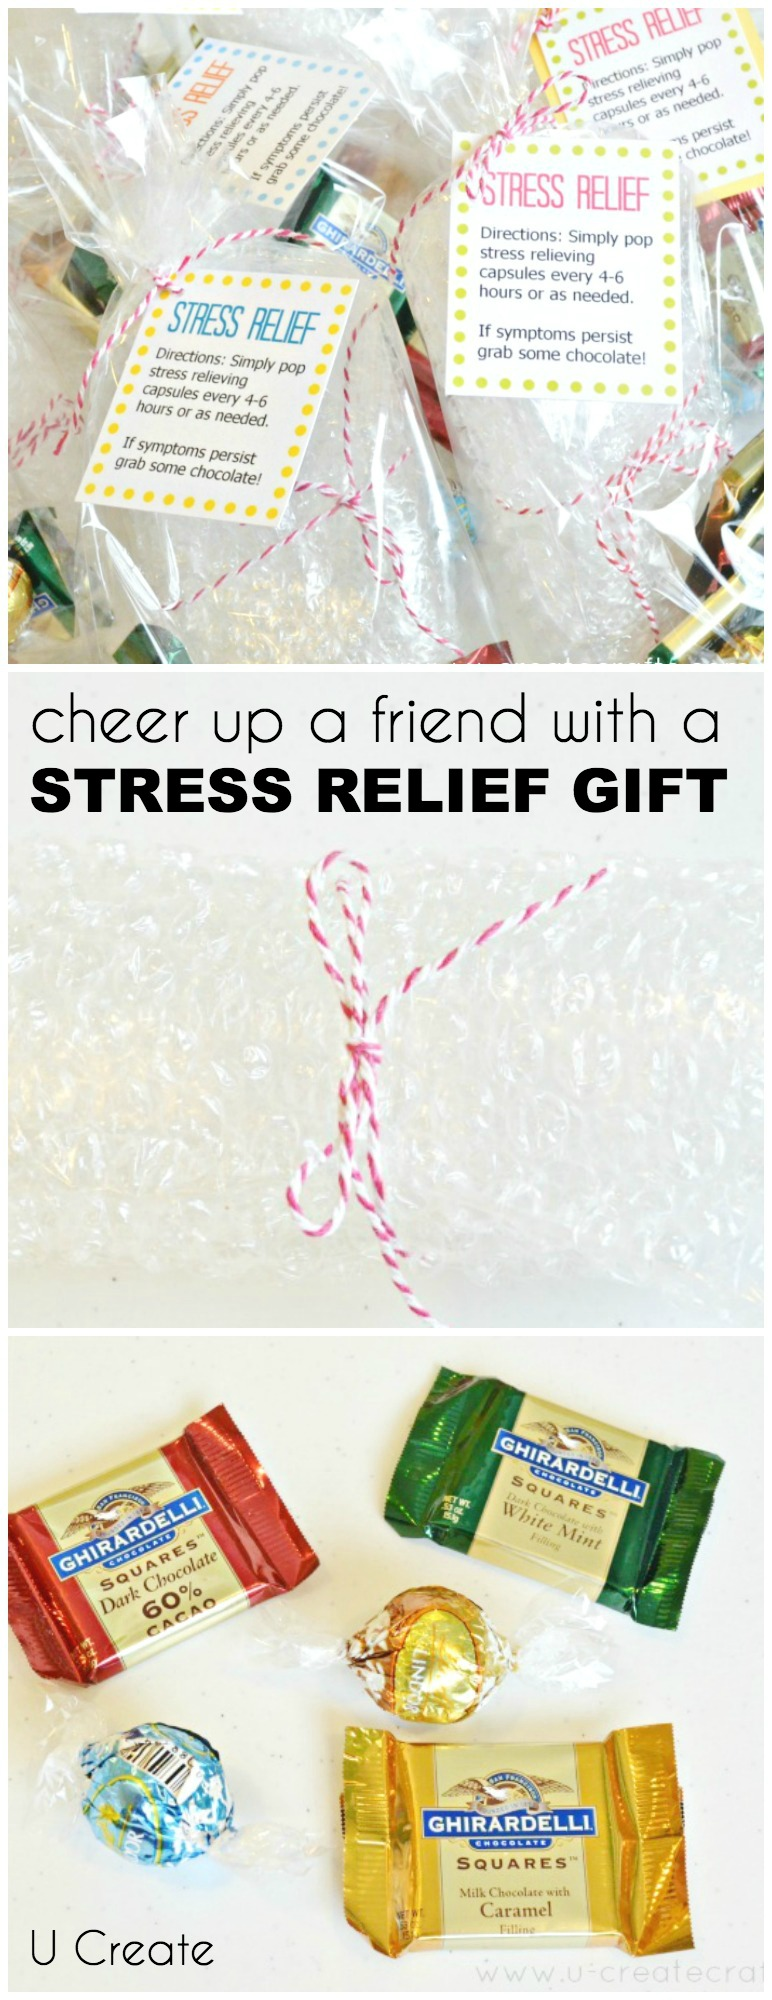 Cheer up a friends with a small Stress Relief Gift!